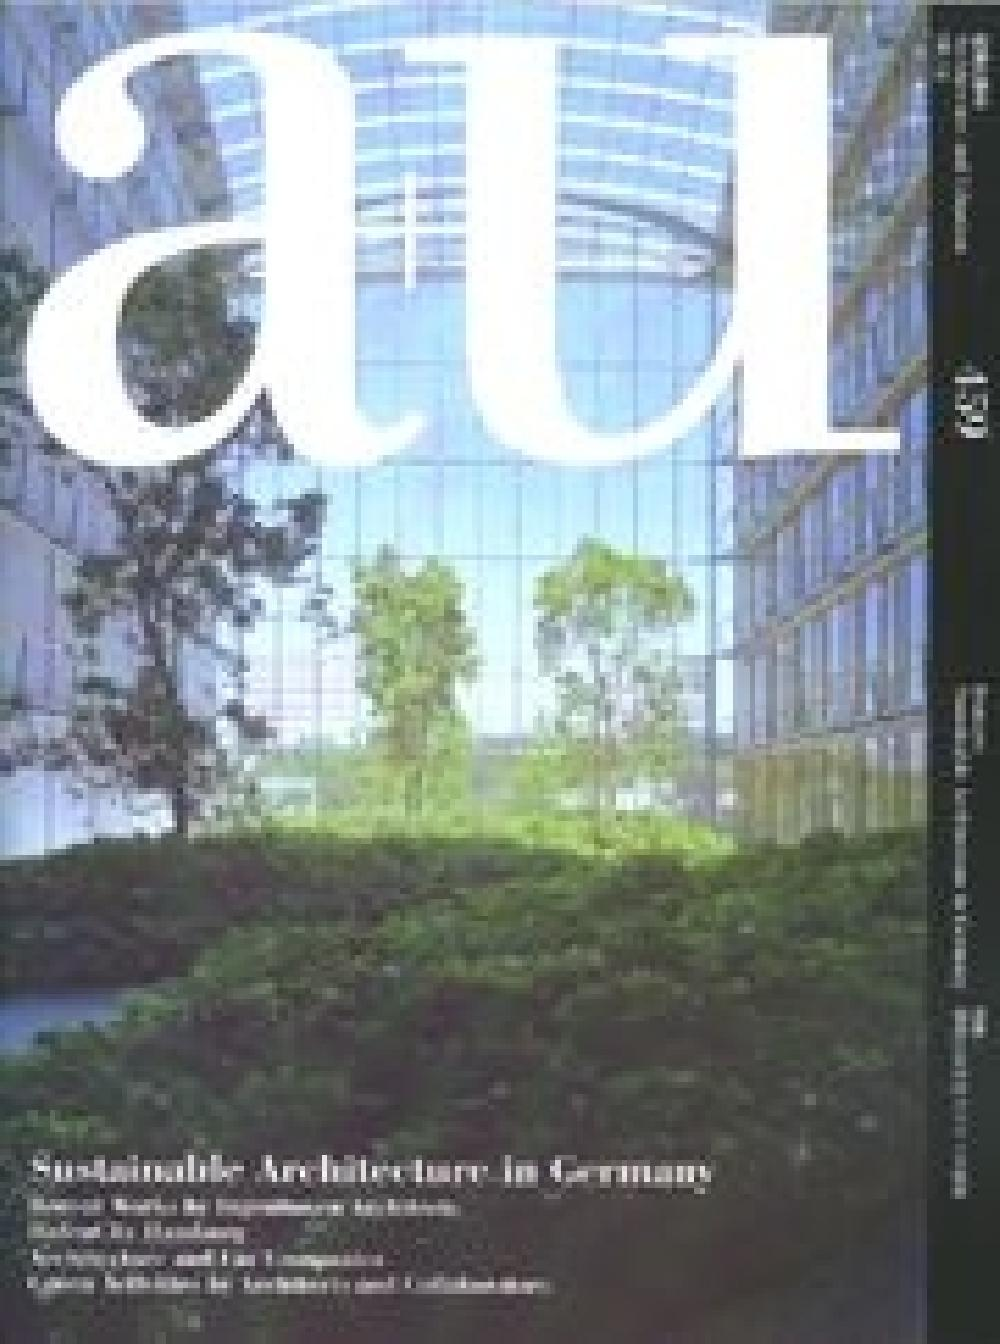 A+U 459 Sustainable Architecture in Germany